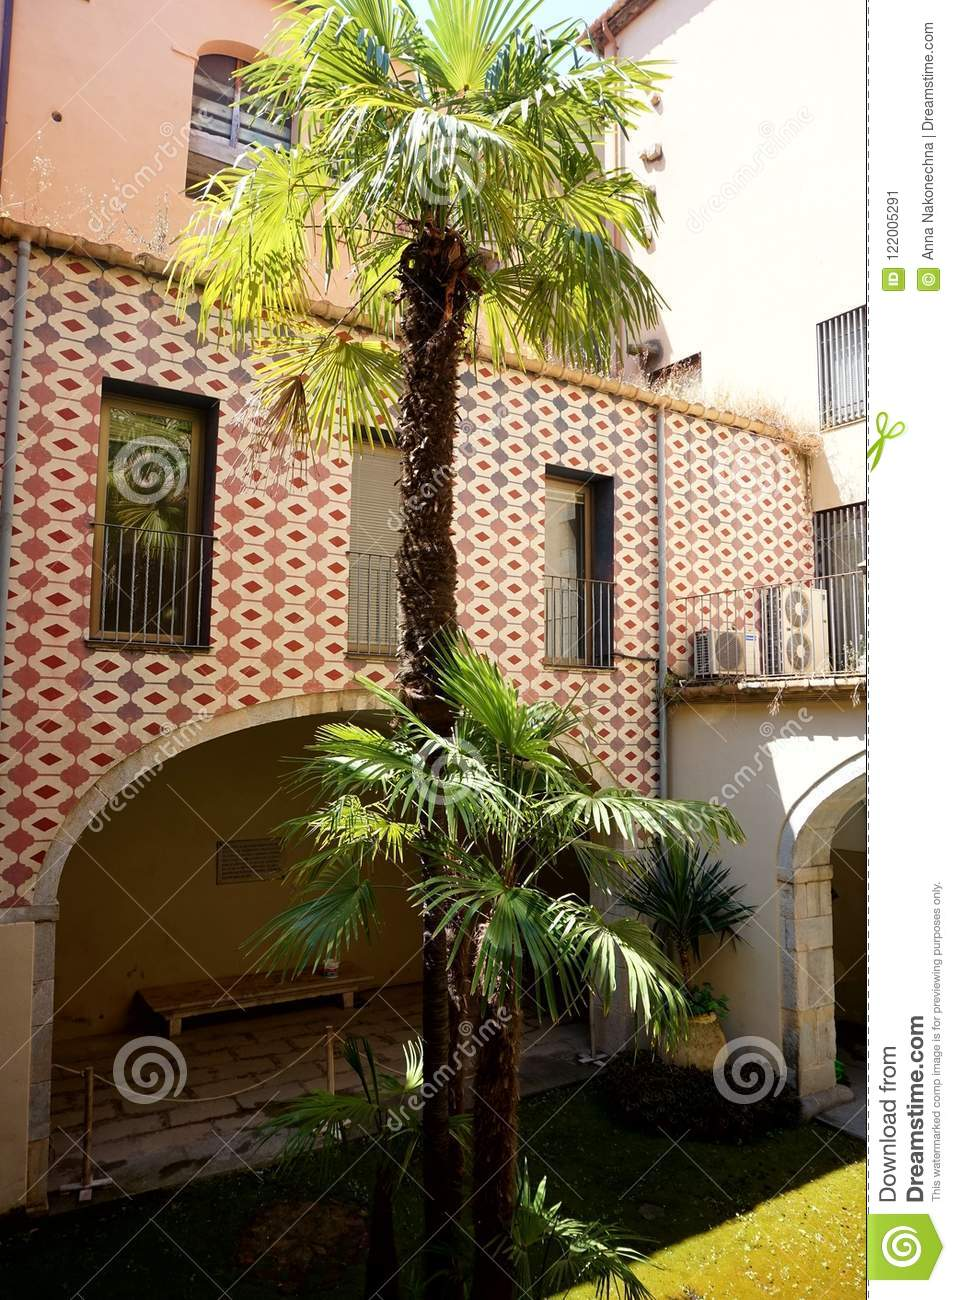 Patio With The Growing Palm Trees Of The Spanish House.